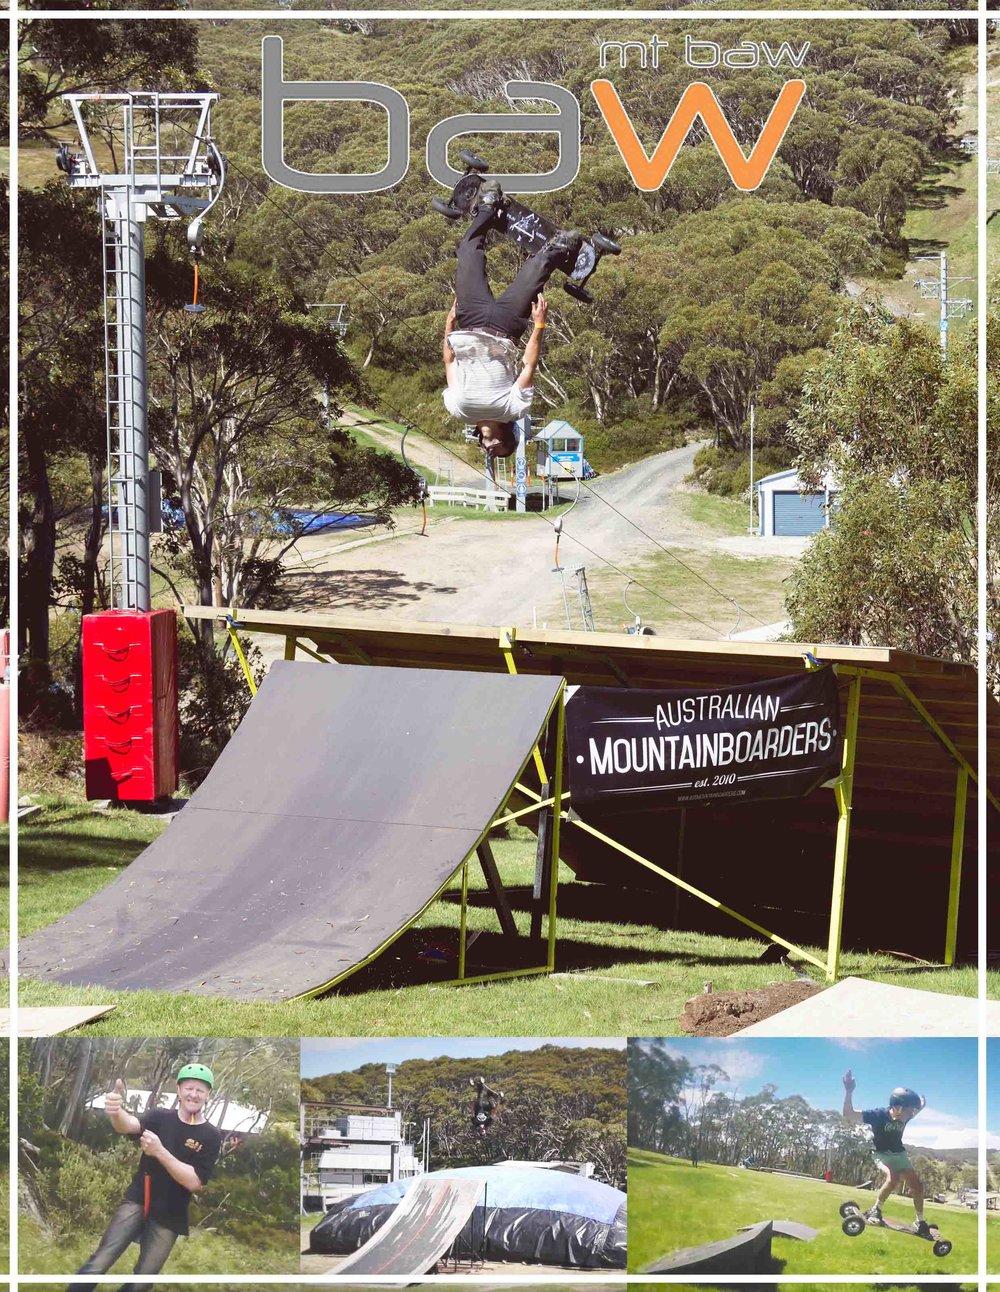 28th of Jan head up to Mt Baw Baw for a fun day Mountainboarding!      -Lift will be open from 11am –3pm - (Although you can ride the mountain the entire day without lifts)  -Mountainboard lessons -Board rentals -Big Air bag + heaps of ramps and rails for everyone to ride    Lessons are $20.00 and will run from:    10am - 11am and 12am -1am    (lift ticket, board hire and lessons will be available from Baw Baw sports)  Stay up to date with the event by liking out  FACEBOOK  page  Check out last years event: